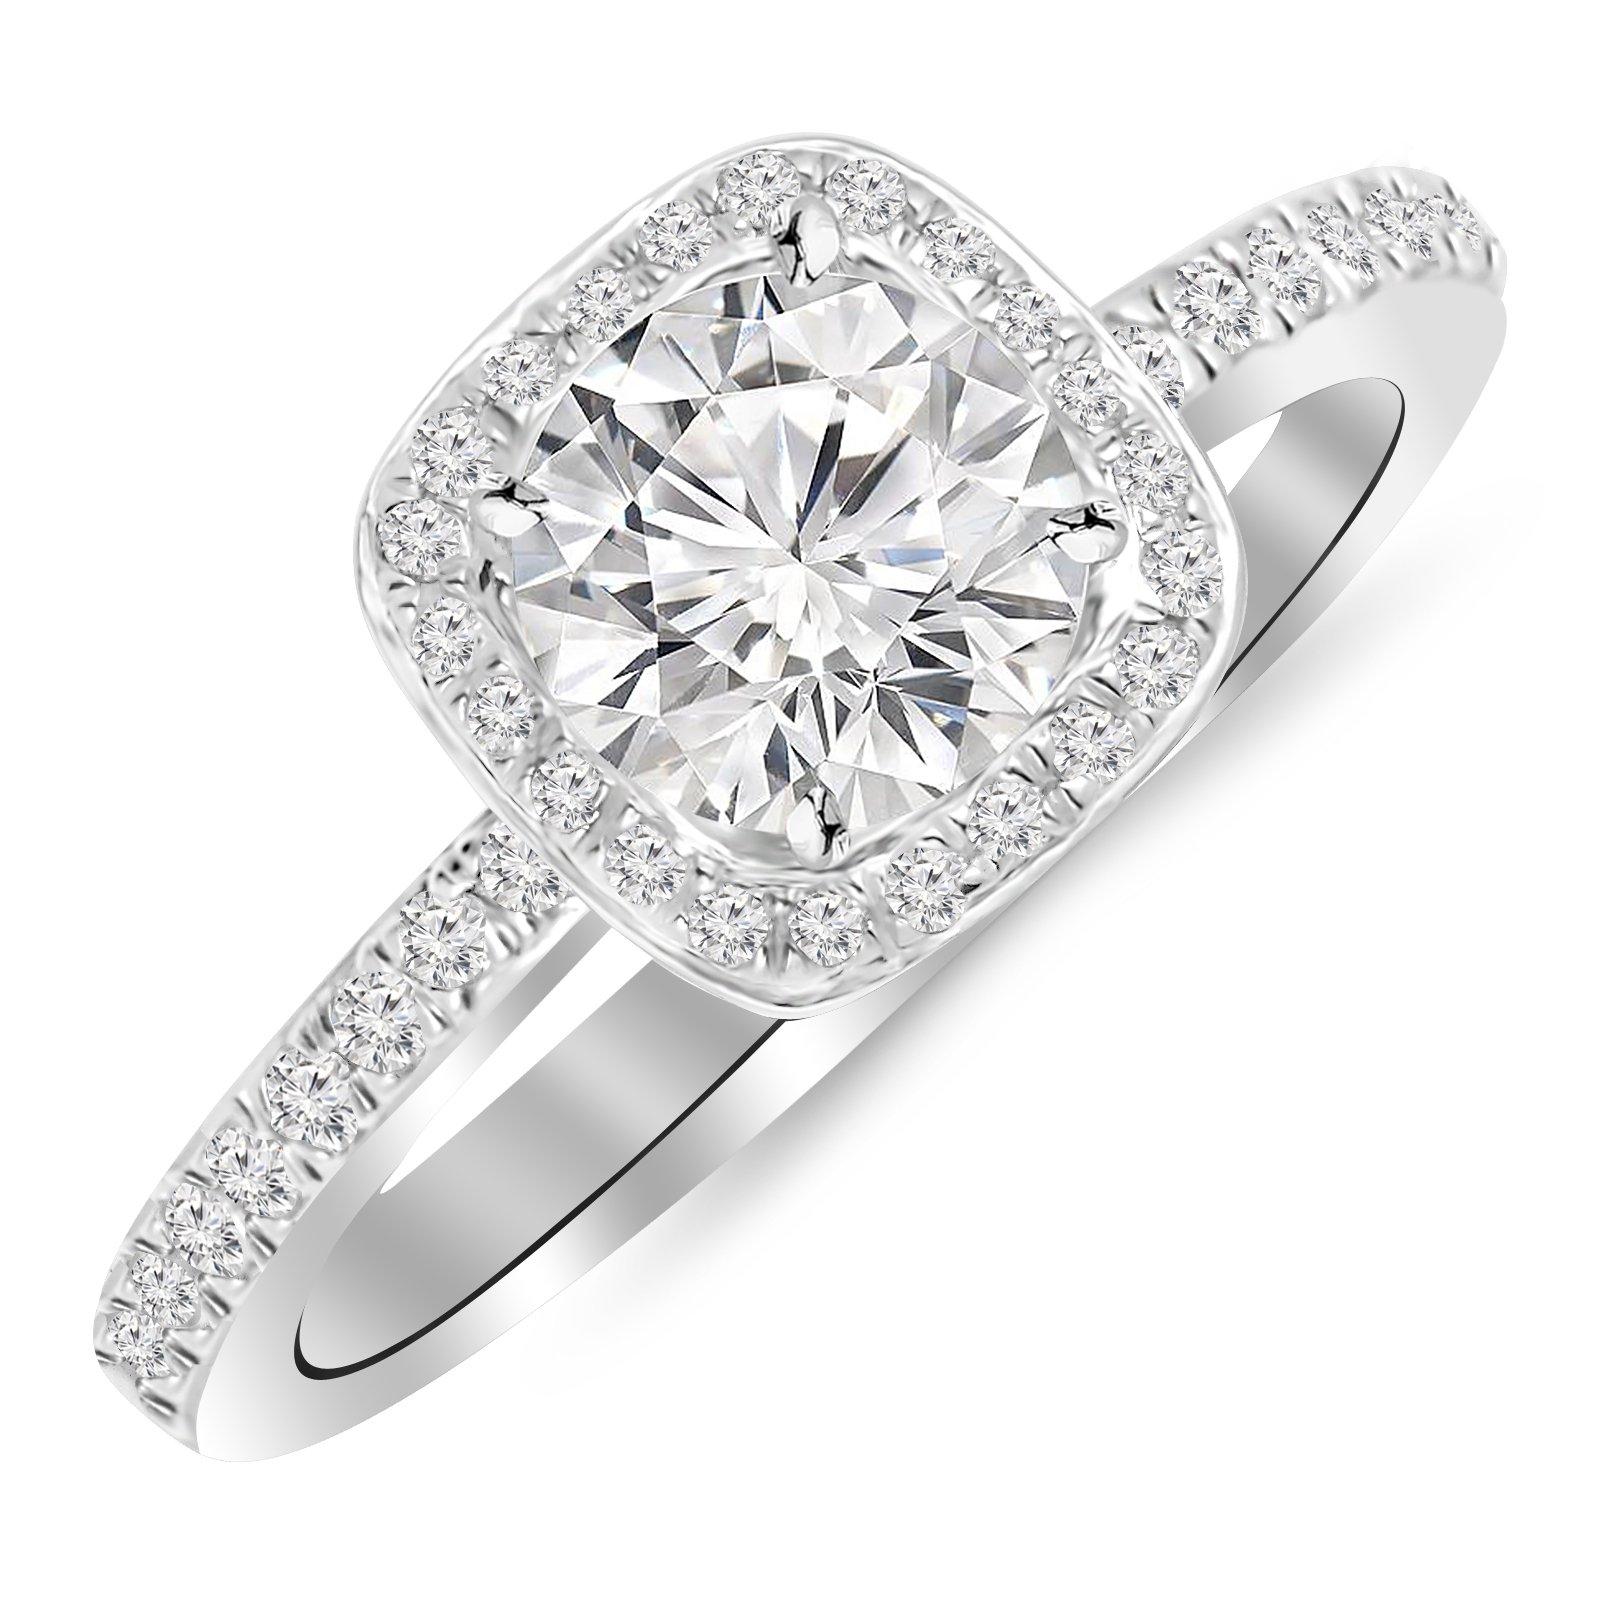 1 Carat Classic Halo Style Cushion Shape Diamond Engagement Ring 14K White Gold with a 0.75 Carat H-I I1 Center by Houston Diamond District